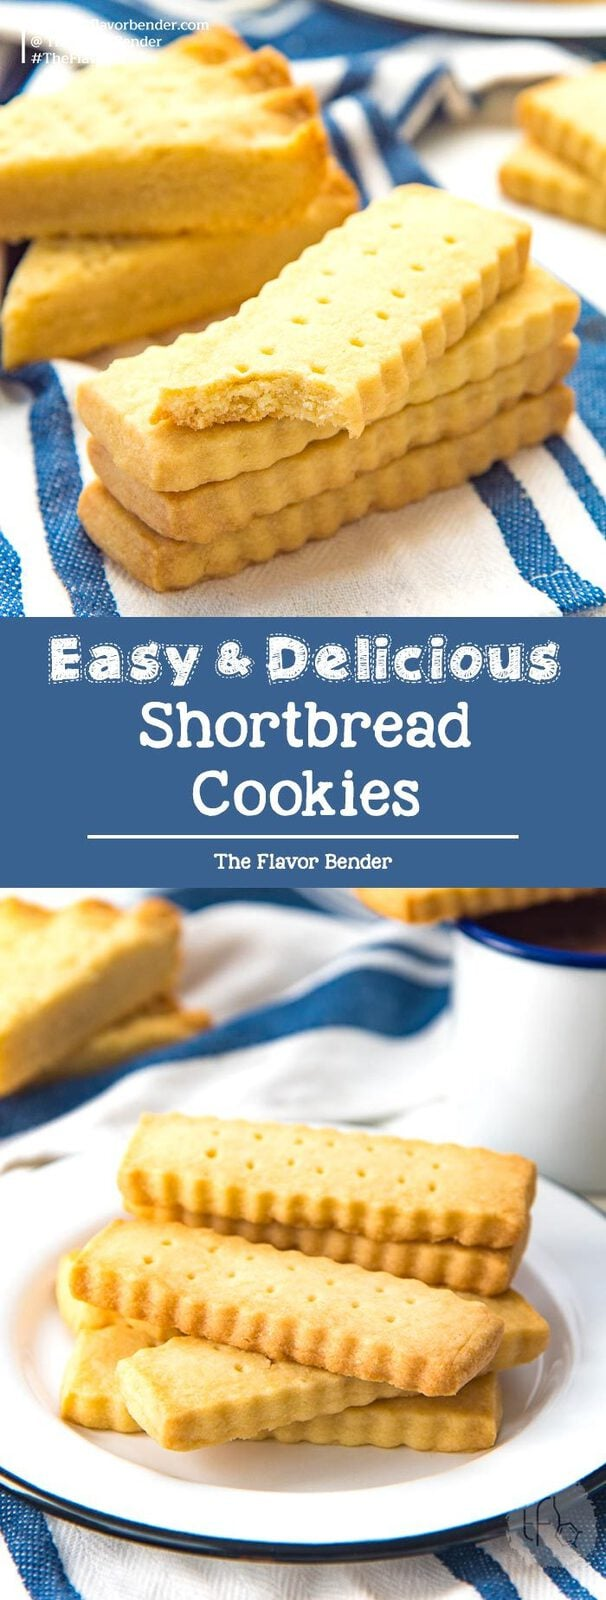 Easy Shortbread Cookies - Buttery, crumbly and light classic shortbread cookies that are easy to make with the minimal amount of ingredients you ALWAYS have in your kitchen! Make the classic version or scottish shortbread. With tips and tricks to make these cookies easily for any occasion!#ShortbreadCookies #EasyCookies #HolidayCookies #ButterCookies #CookieGuide